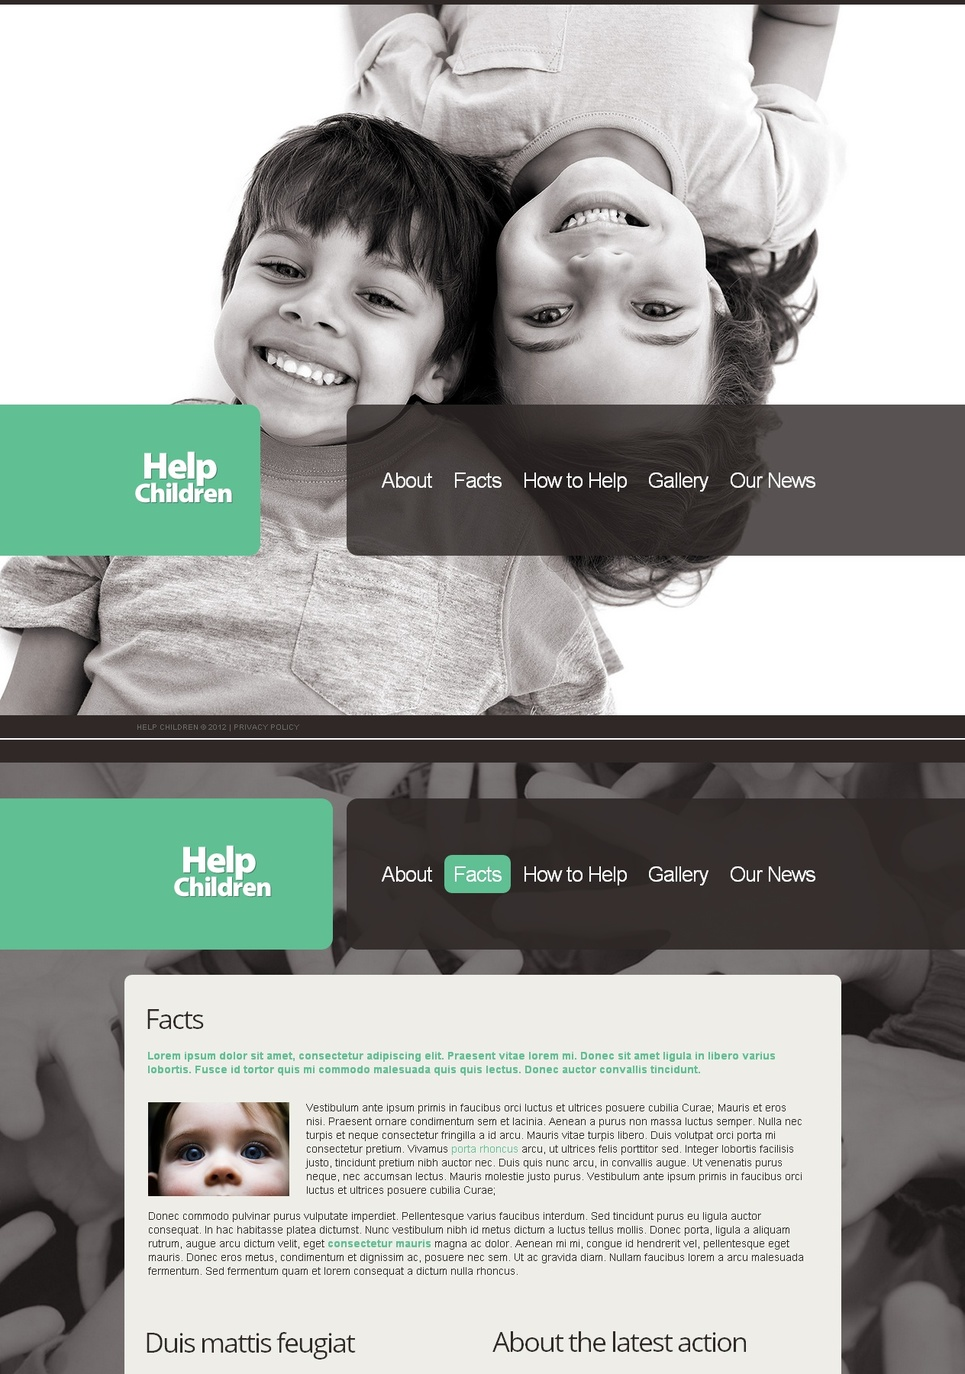 Charity Website Template to Help Children - image